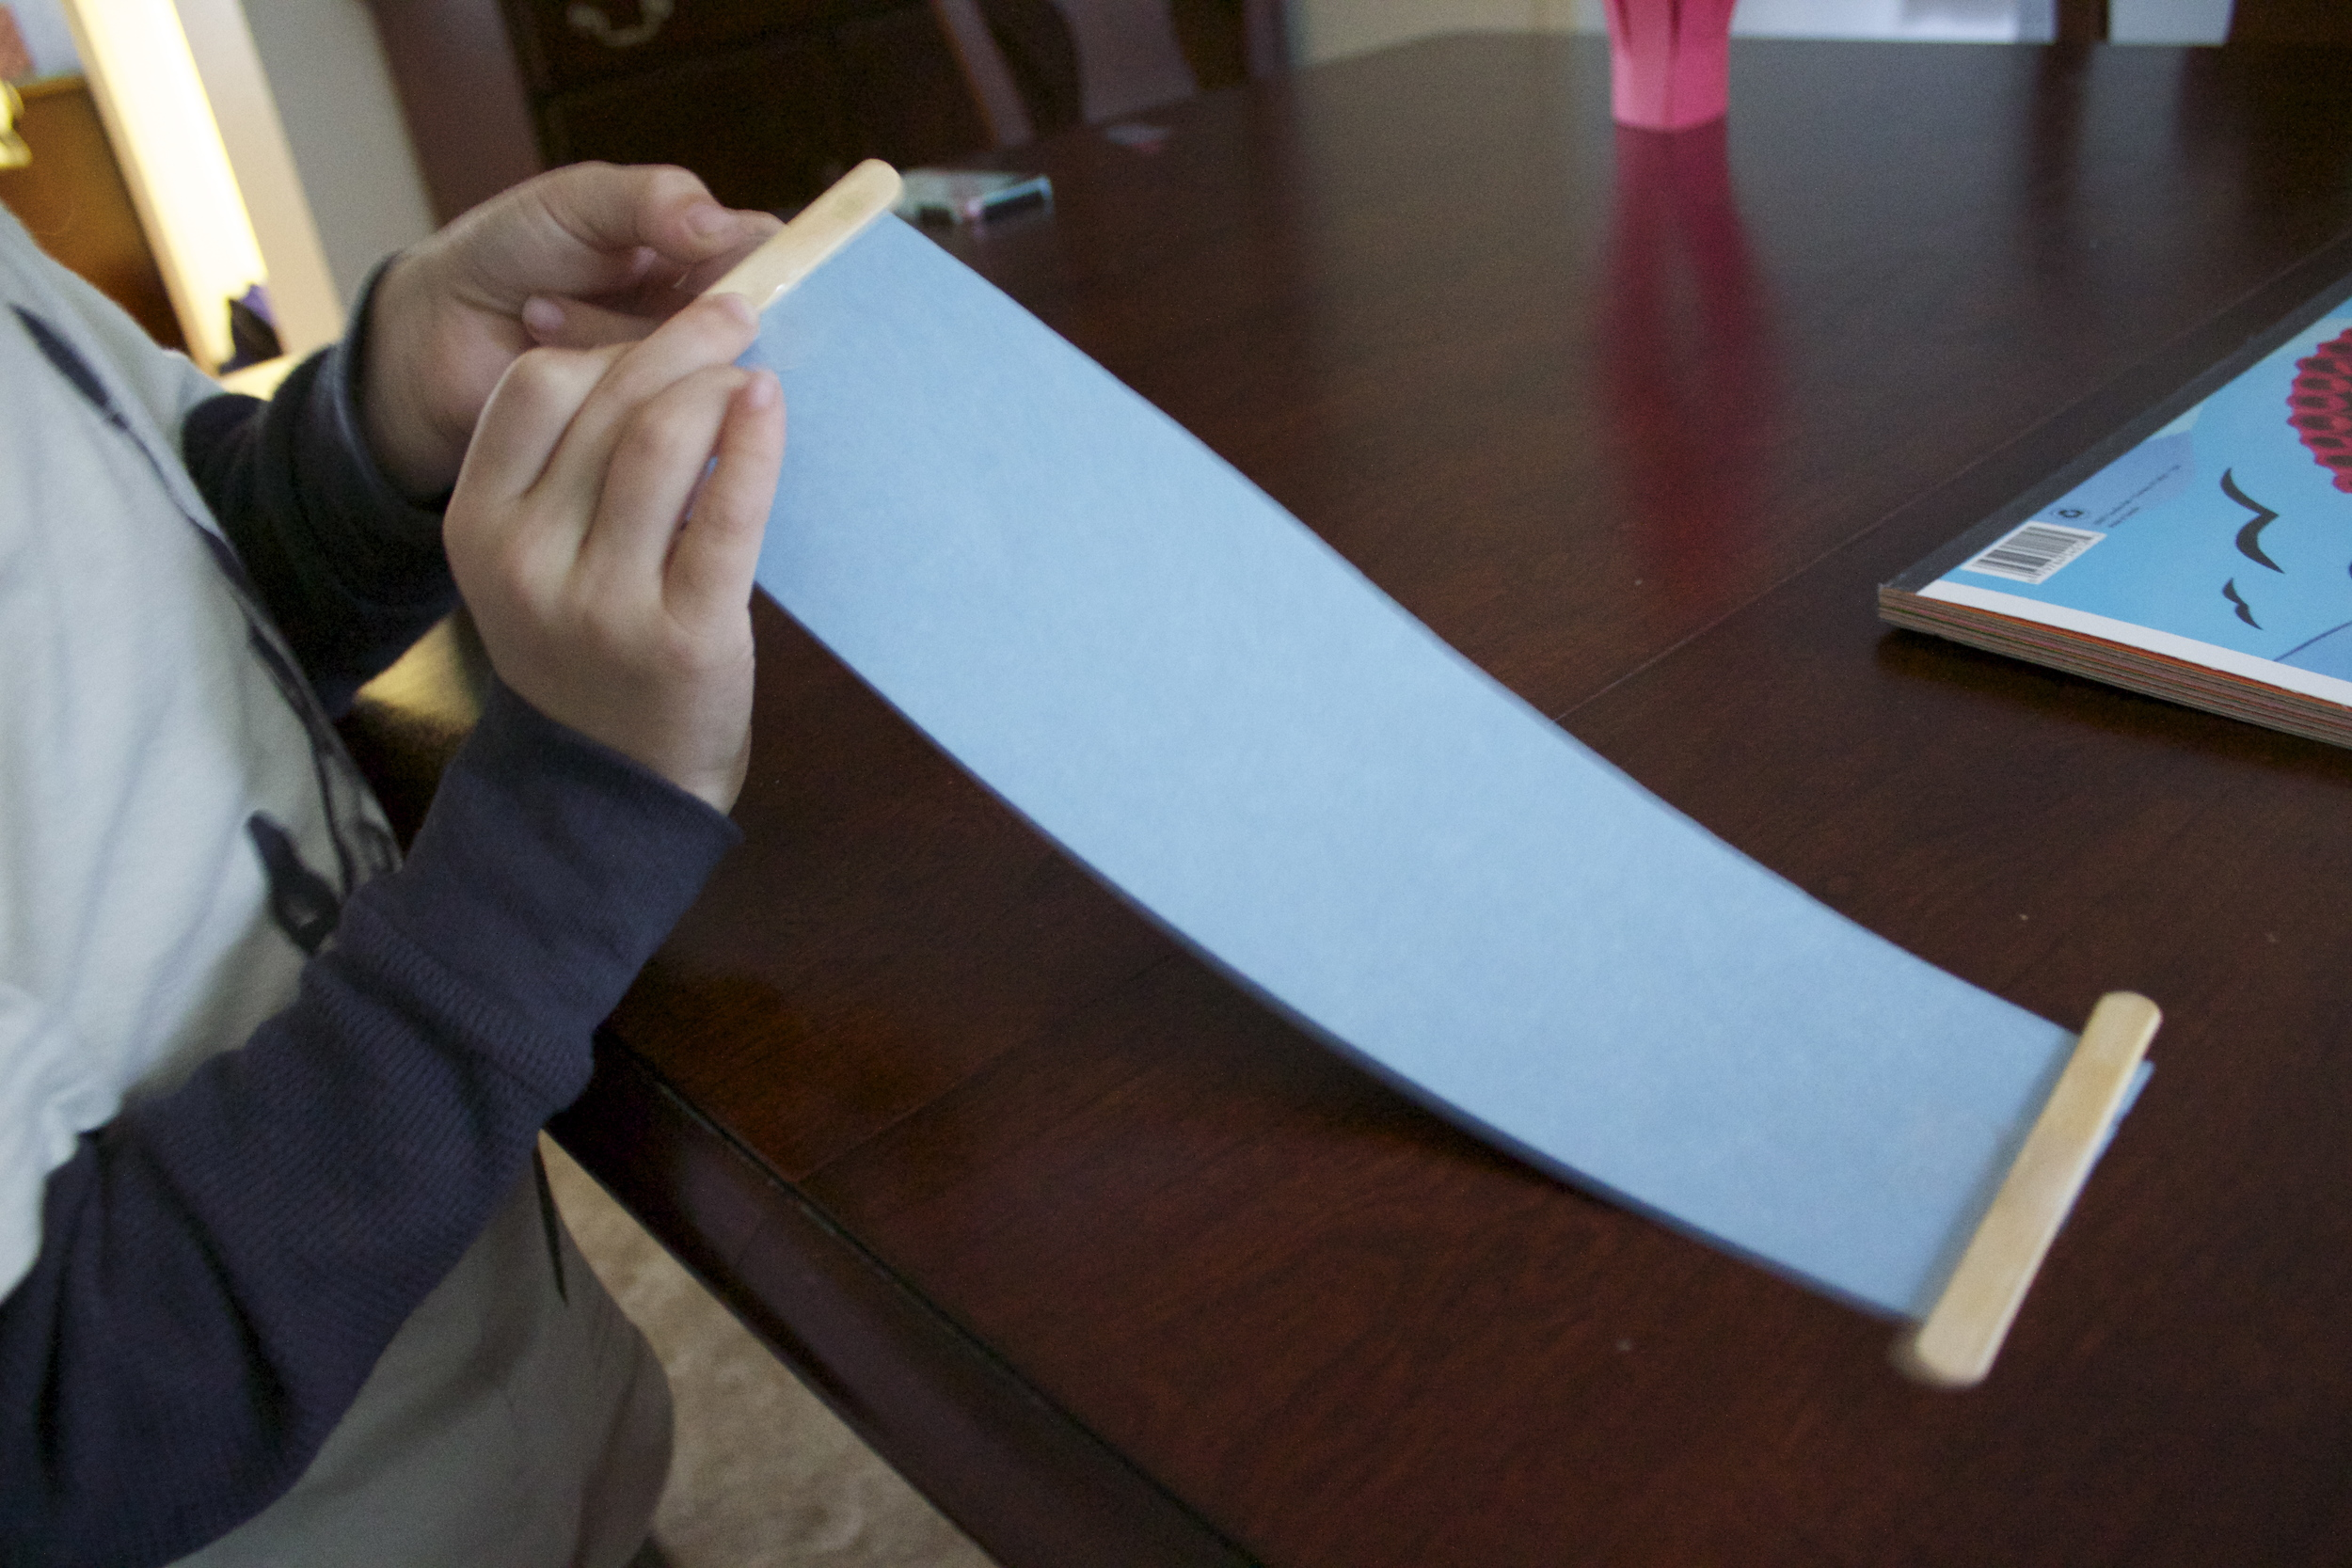 Taping the sticks to the paper.